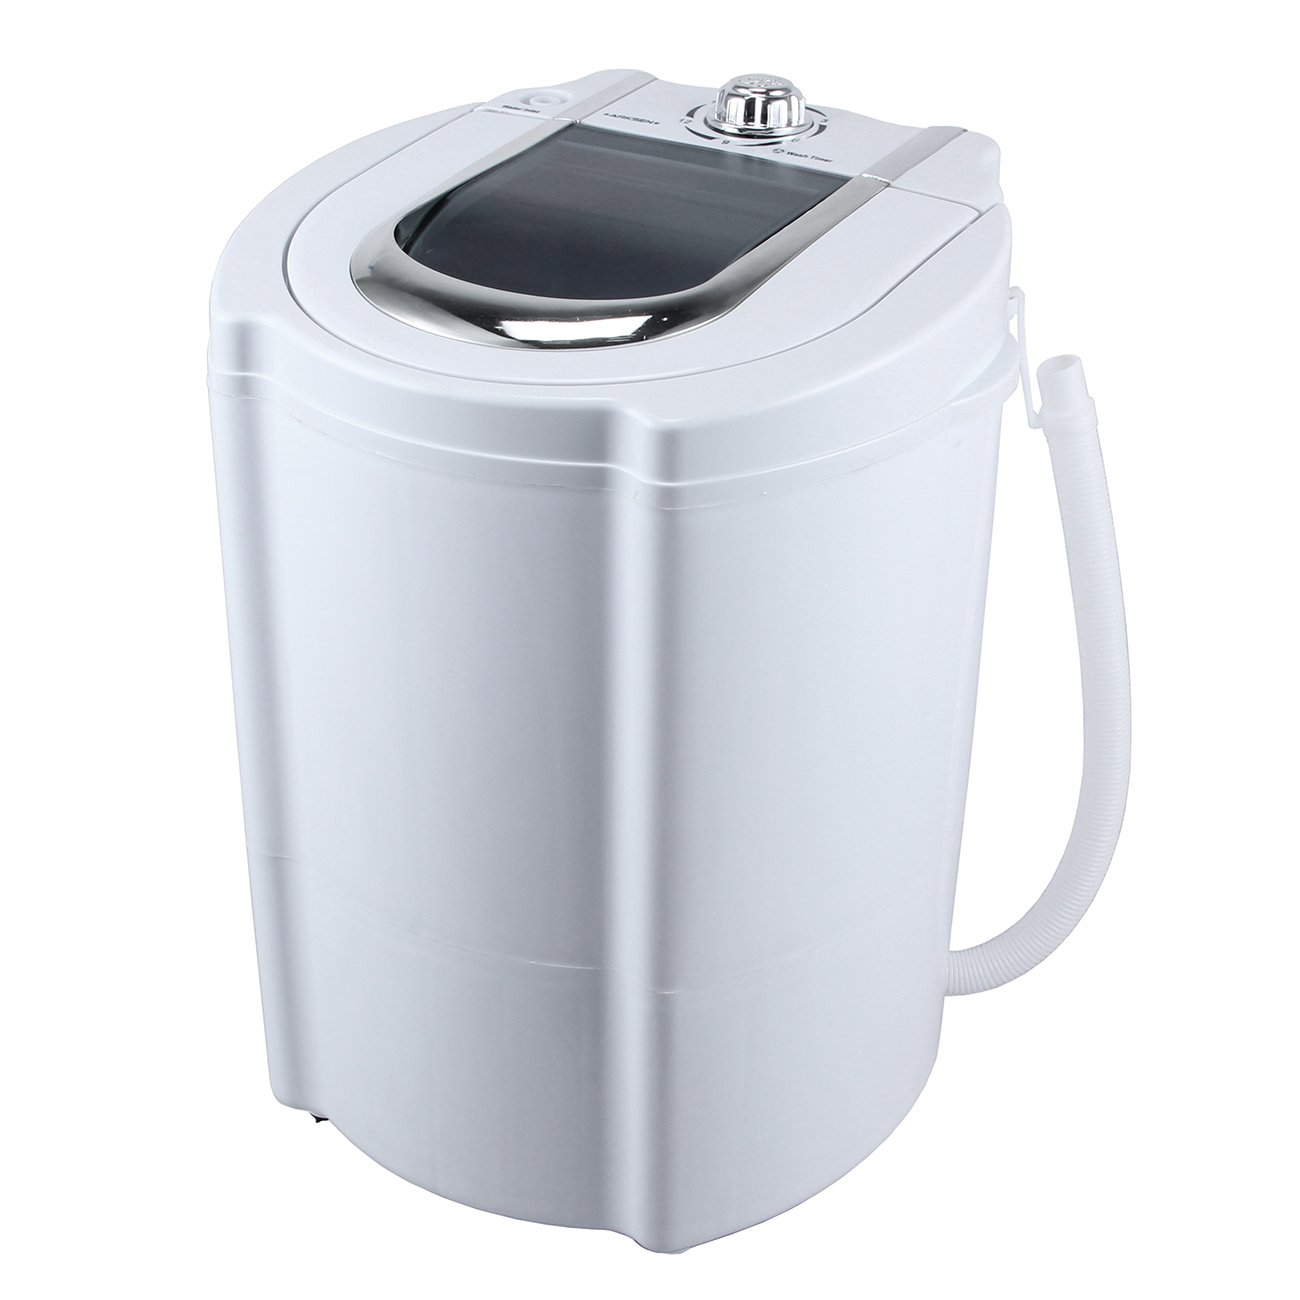 Electric Mini Portable Compact Washing Machine Wash Cycle 5.5LBS Capacity RV Apartment Home Dorm